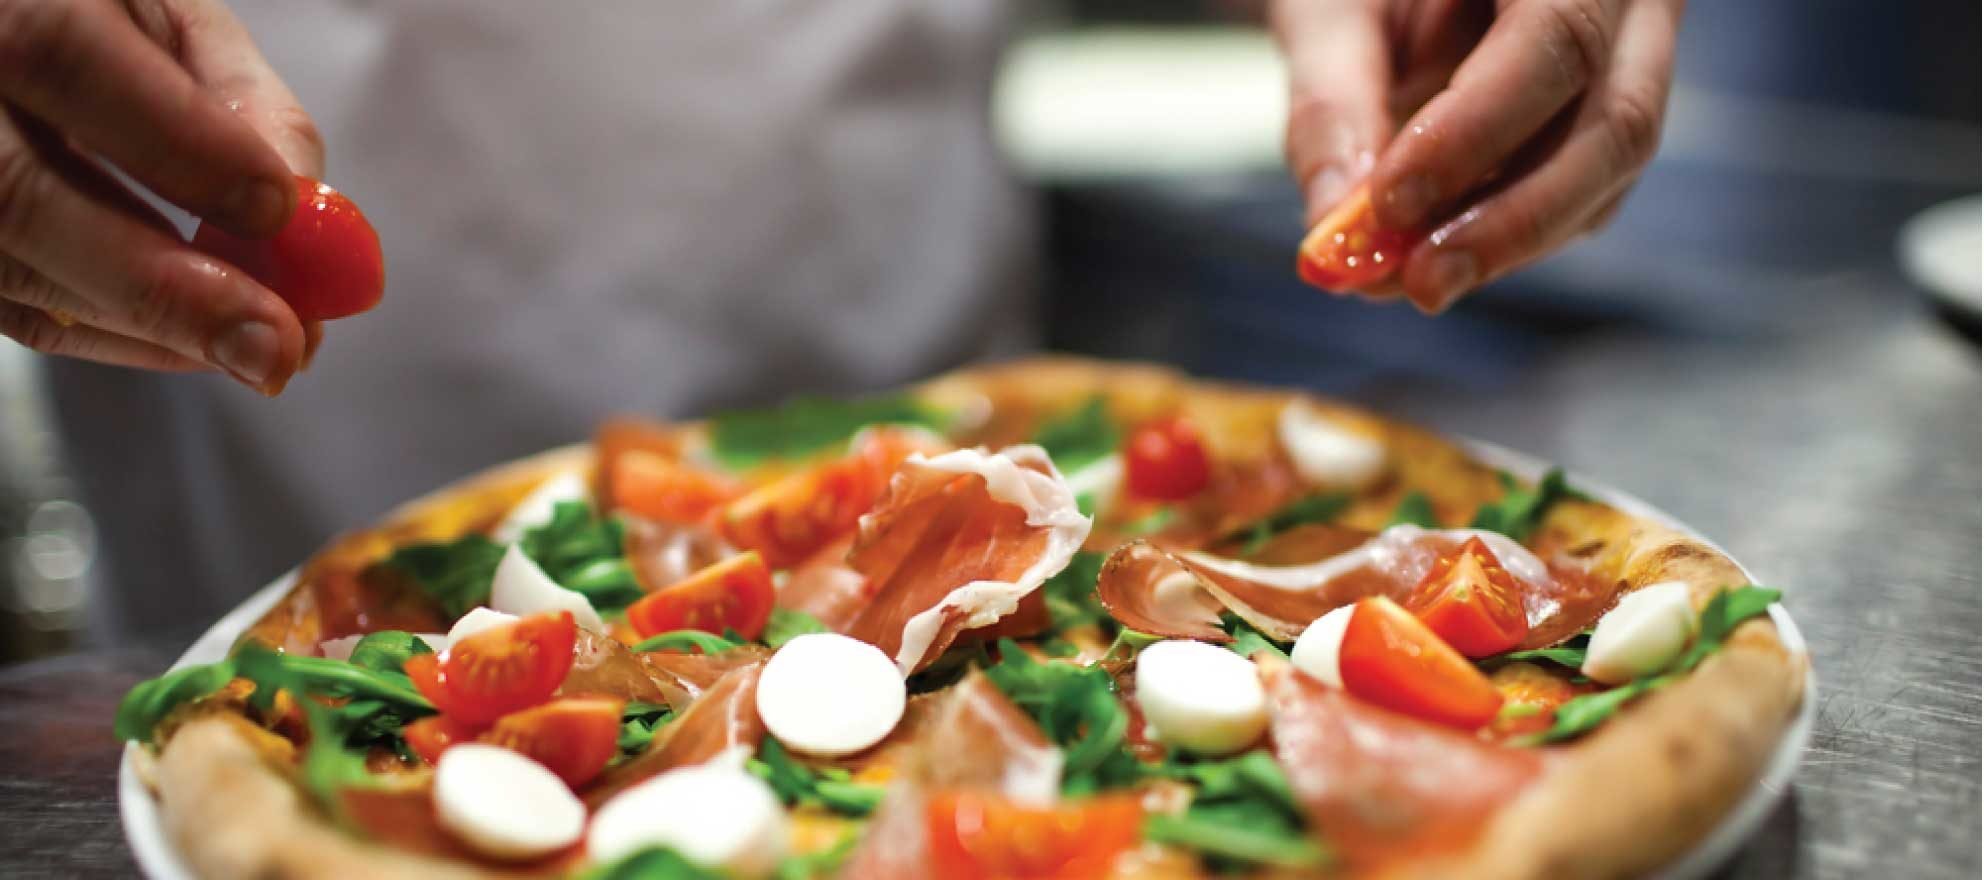 3 ways pizza can grease home sales